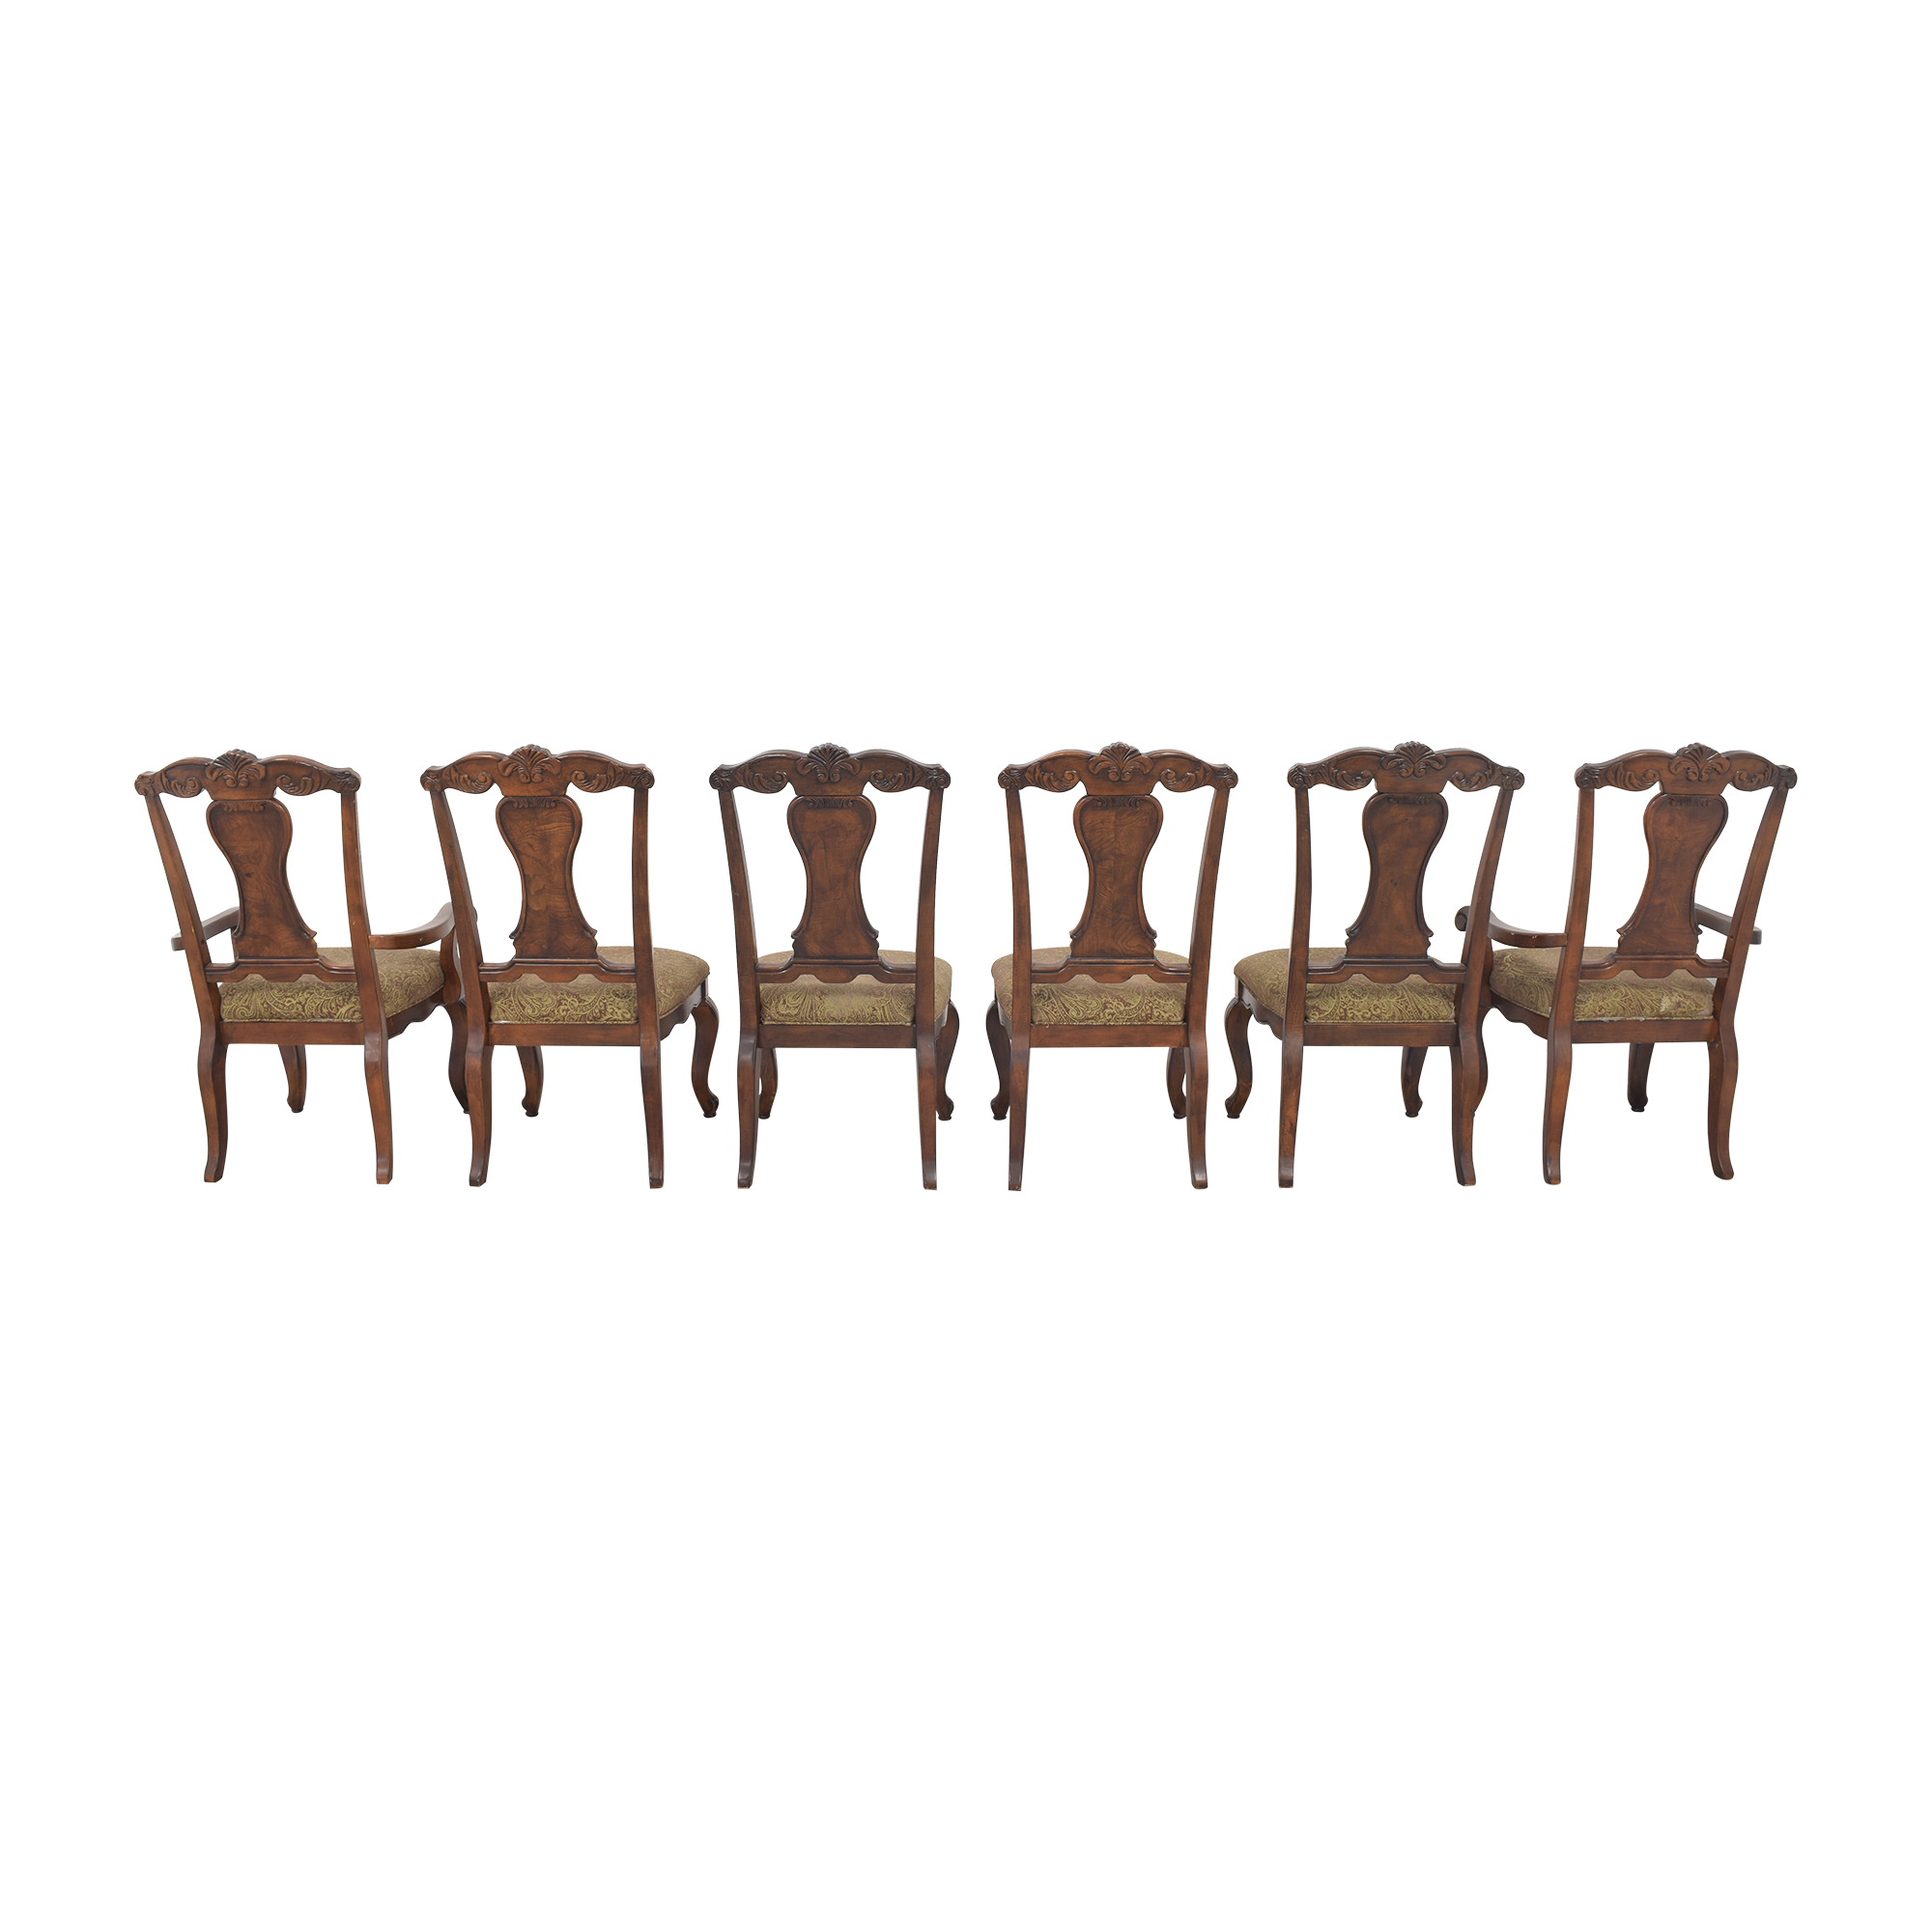 Raymour & Flanigan Raymour & Flanigan Carved Dining Chairs for sale